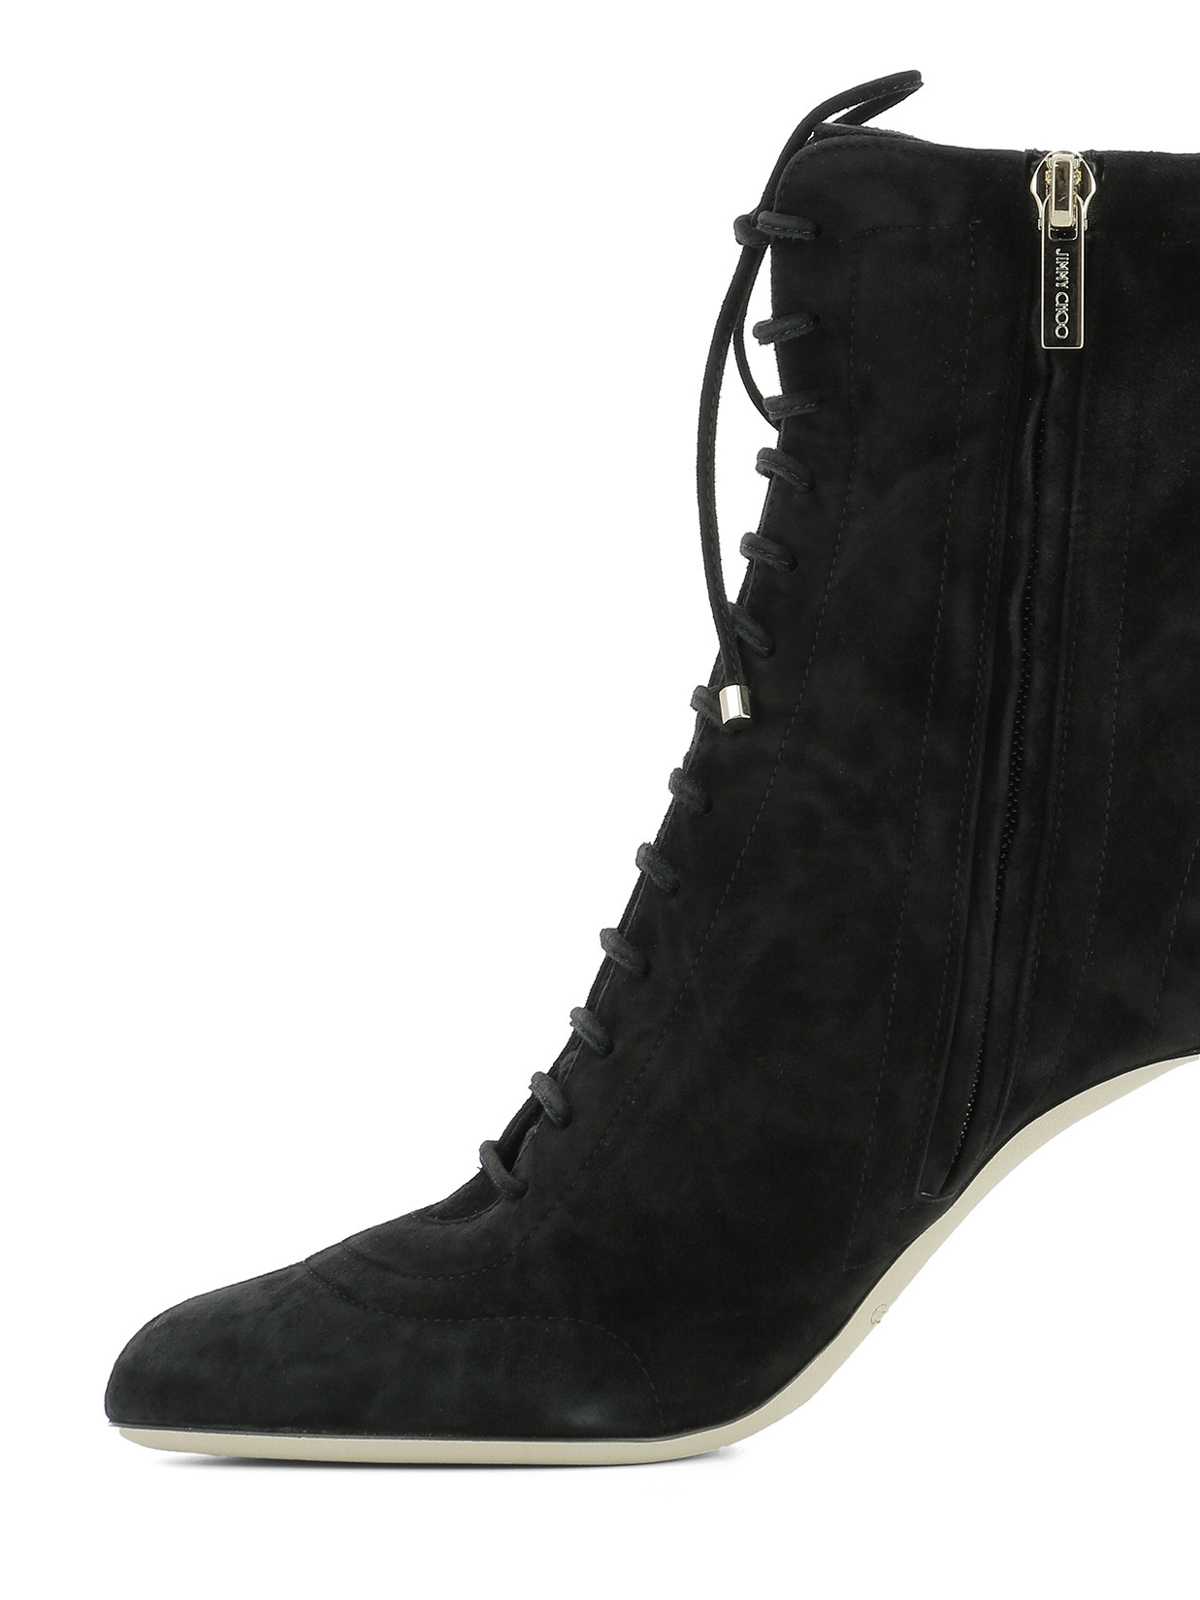 89486066c239a Jimmy Choo - Daize lace-up suede booties - ankle boots - DAIZE 85 ...